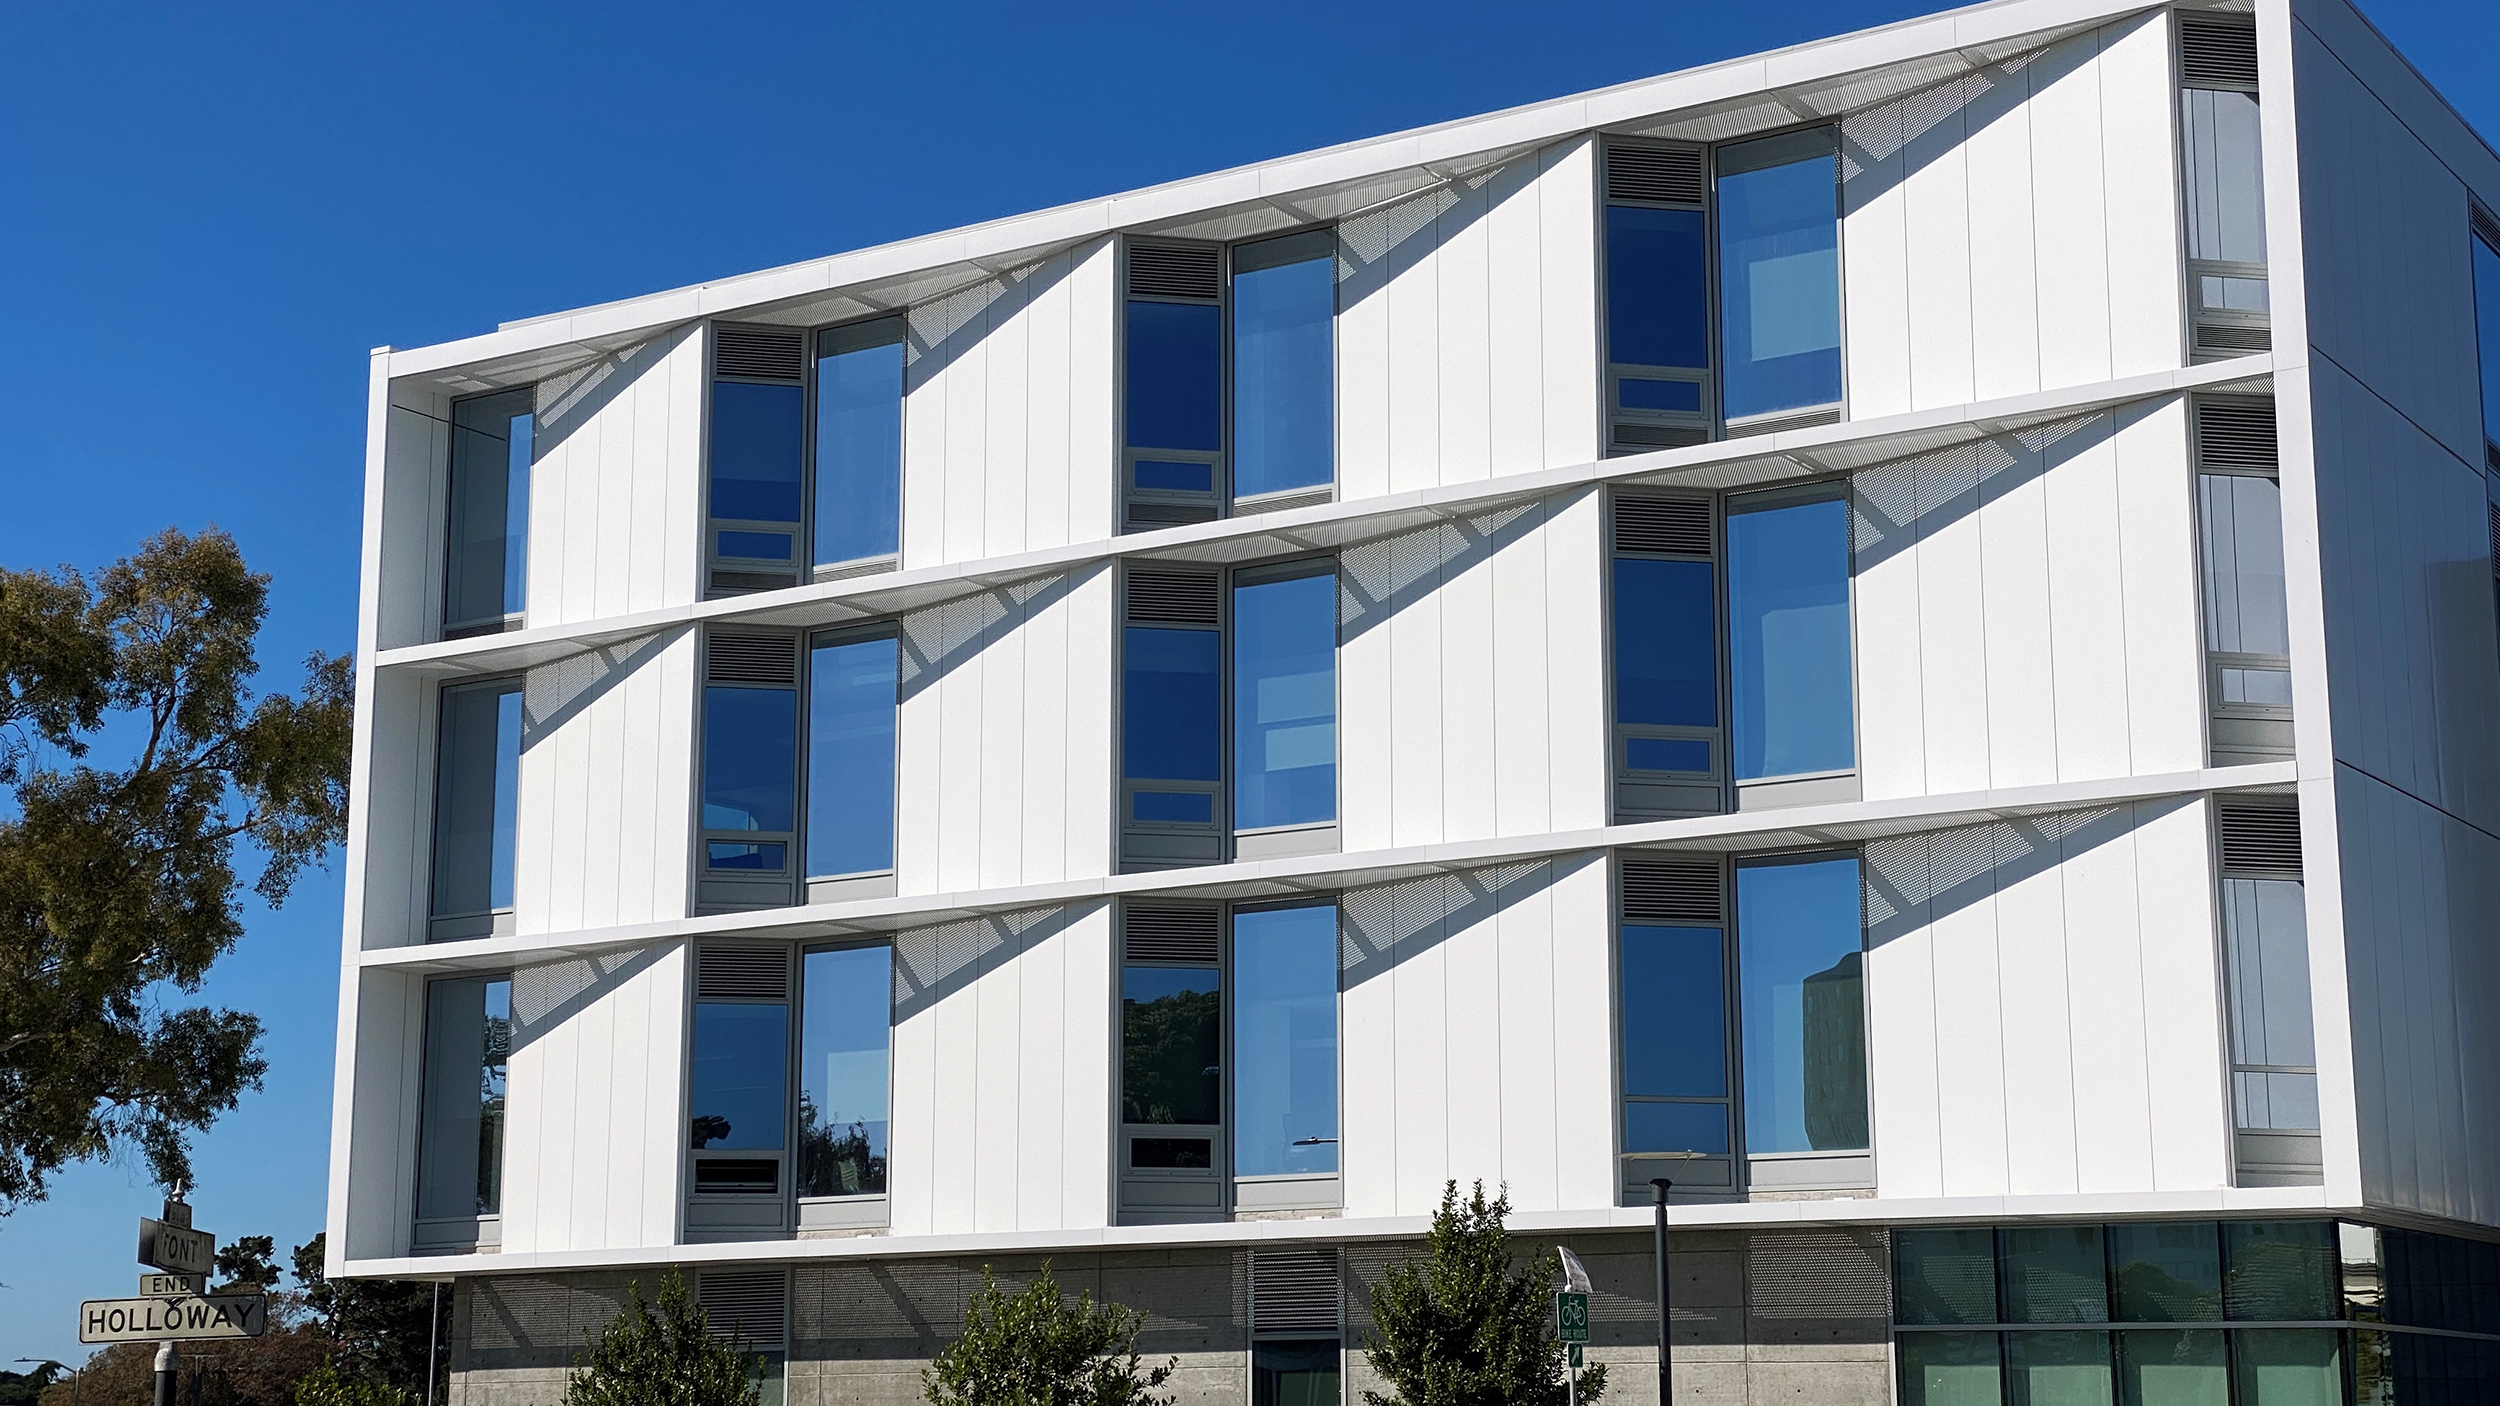 Marcus Hall exterior photo with bright blue sky mirrored in windows at San Francisco State University